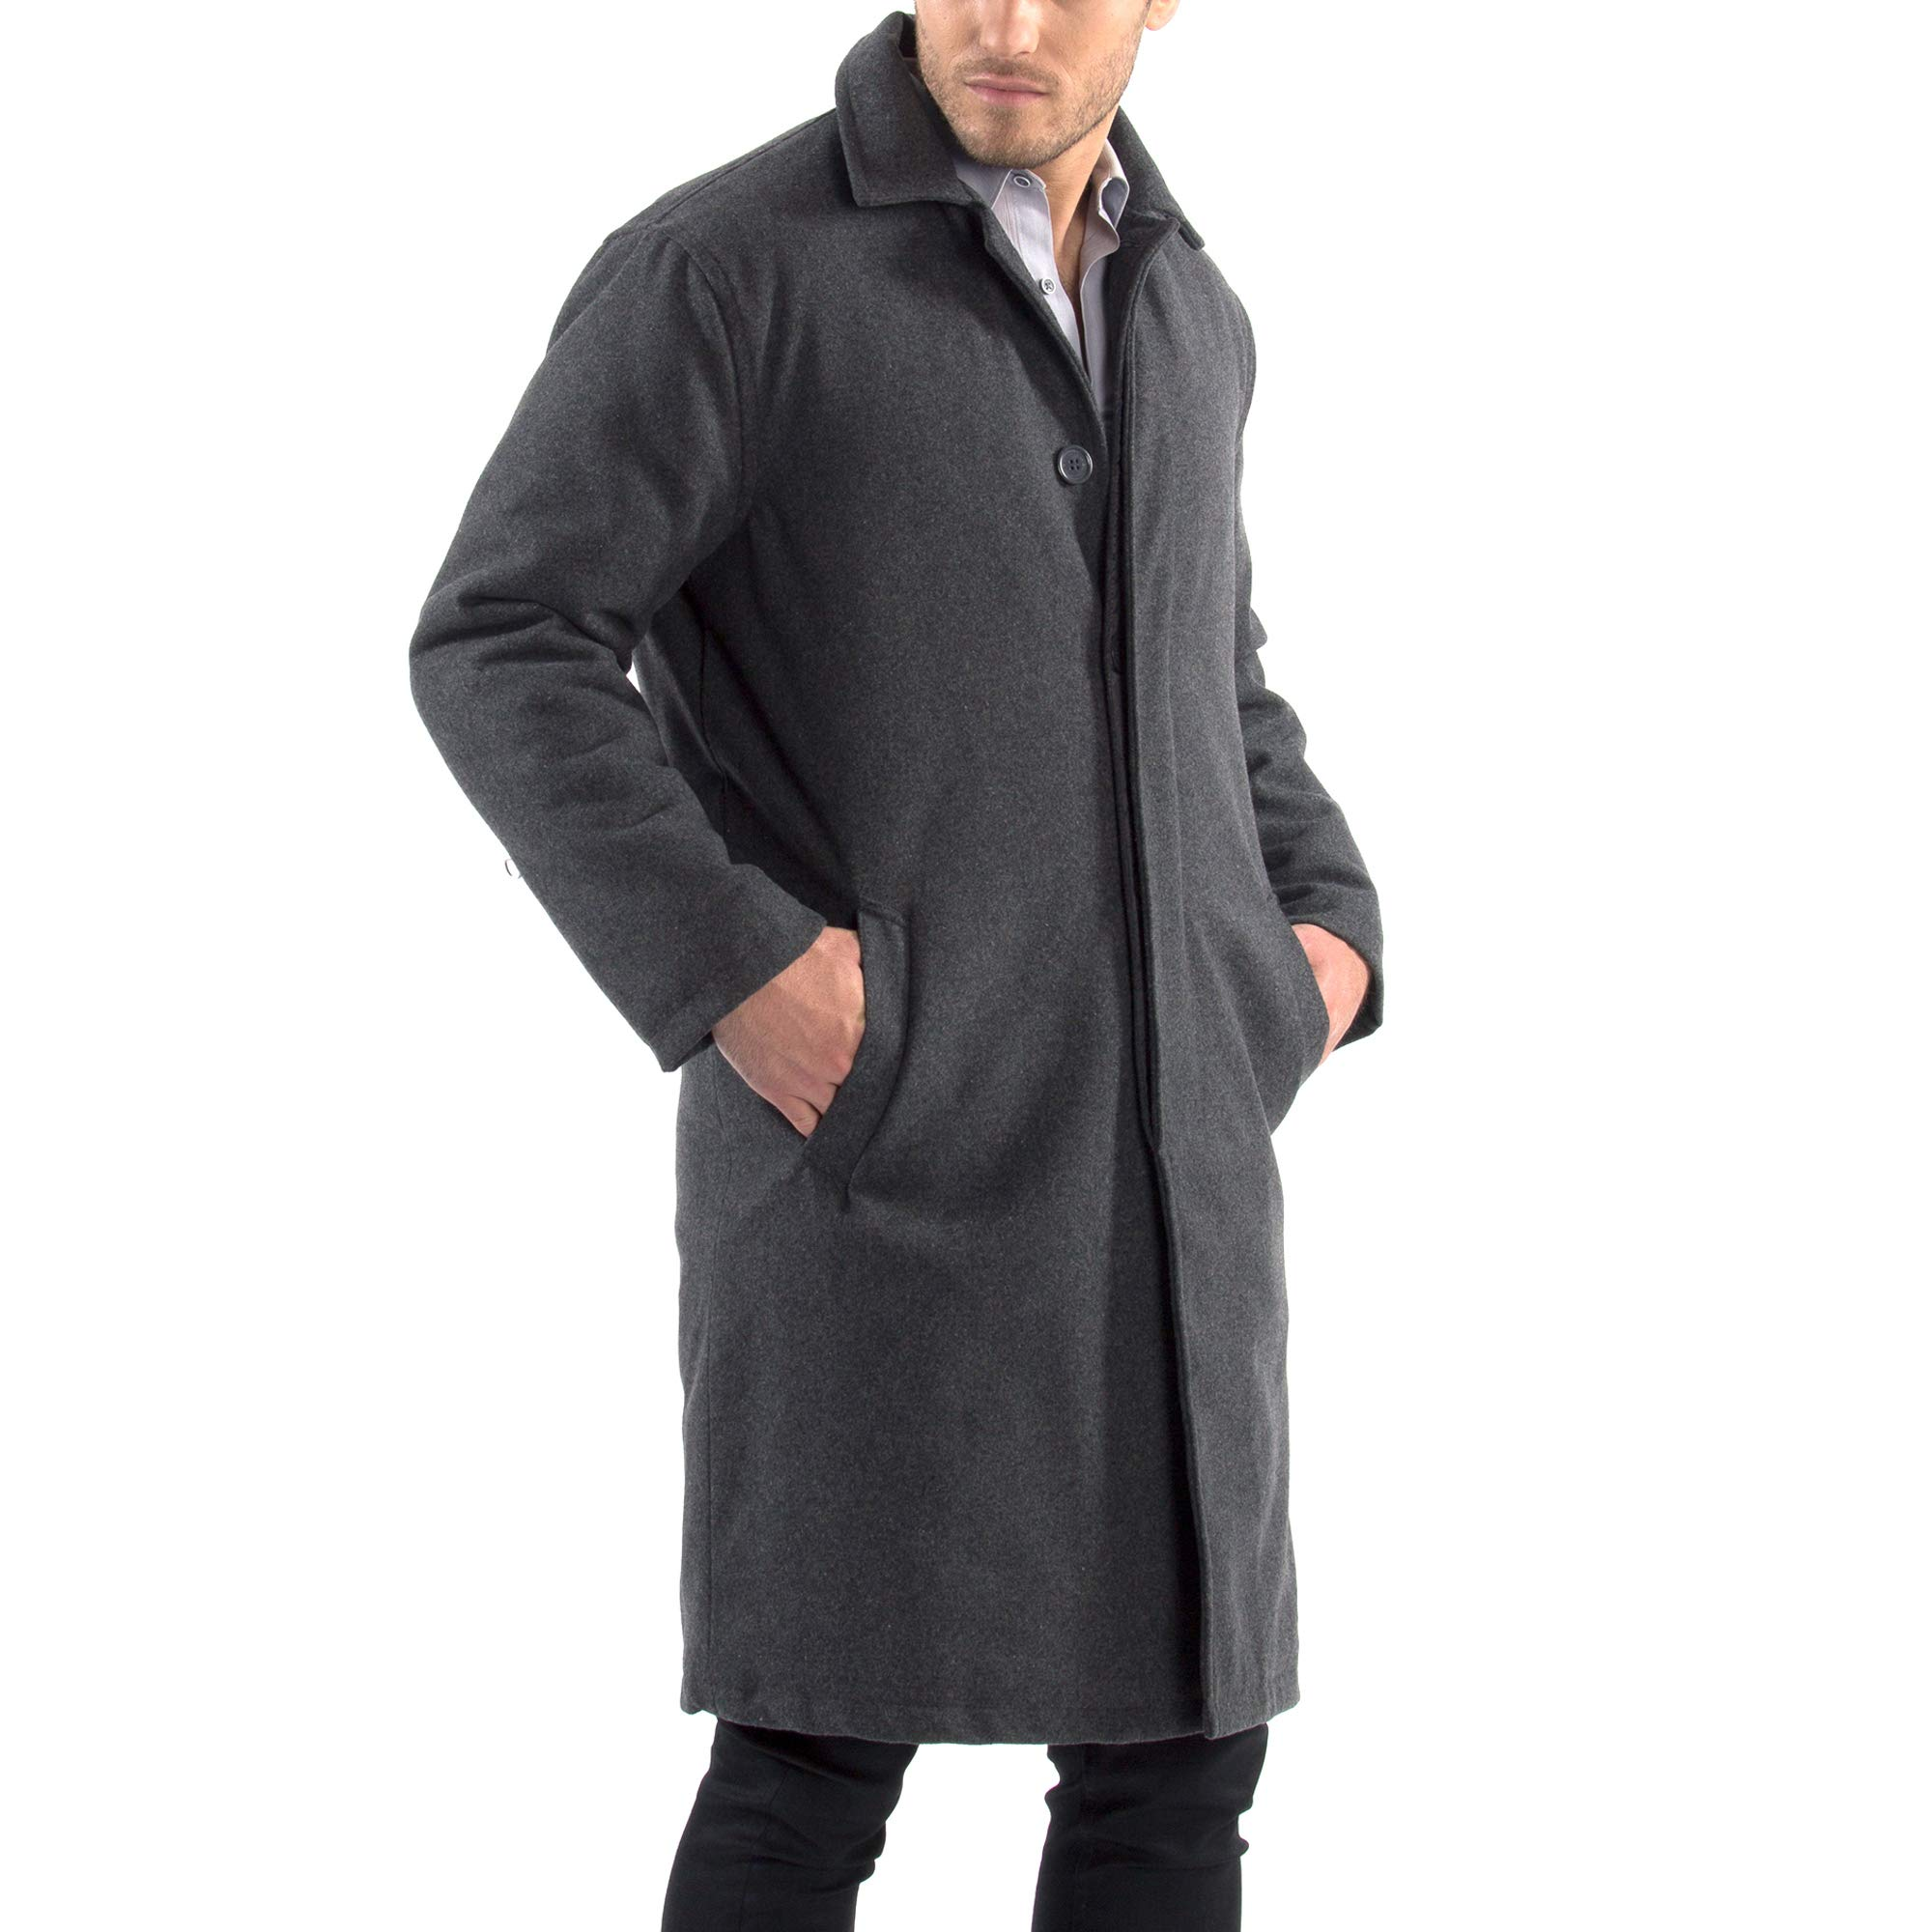 Lavnis Mens Cotton Blend Jacket Casual Stand Collar Single Breasted Trench Overcoat Style 2 Dark Blue M